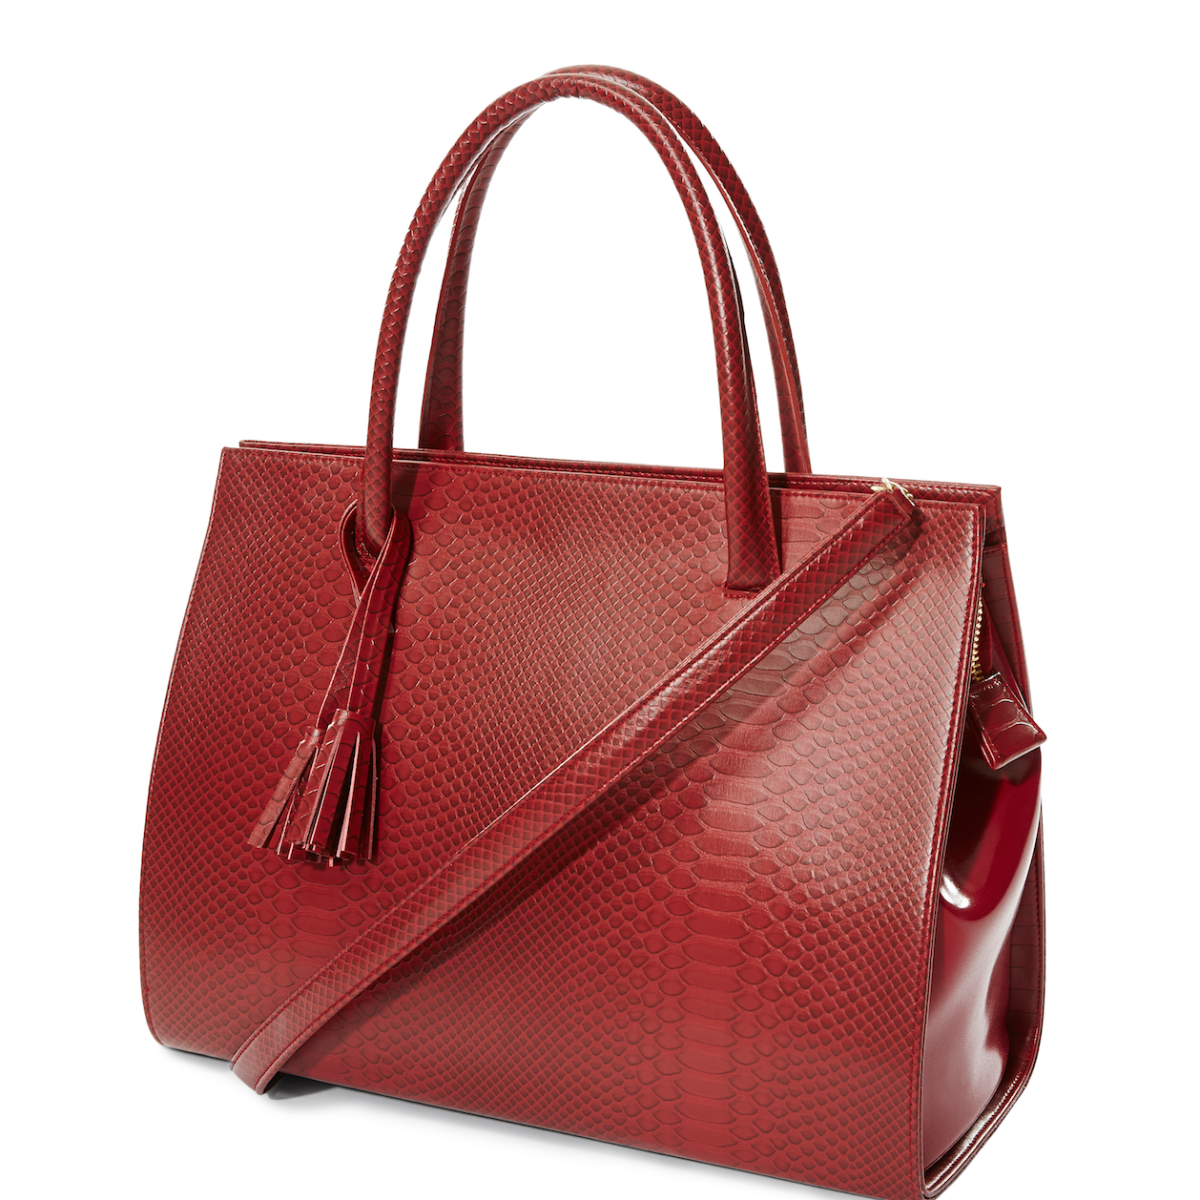 V'irkin bag, animal cruelty free alternative to Birkin bag